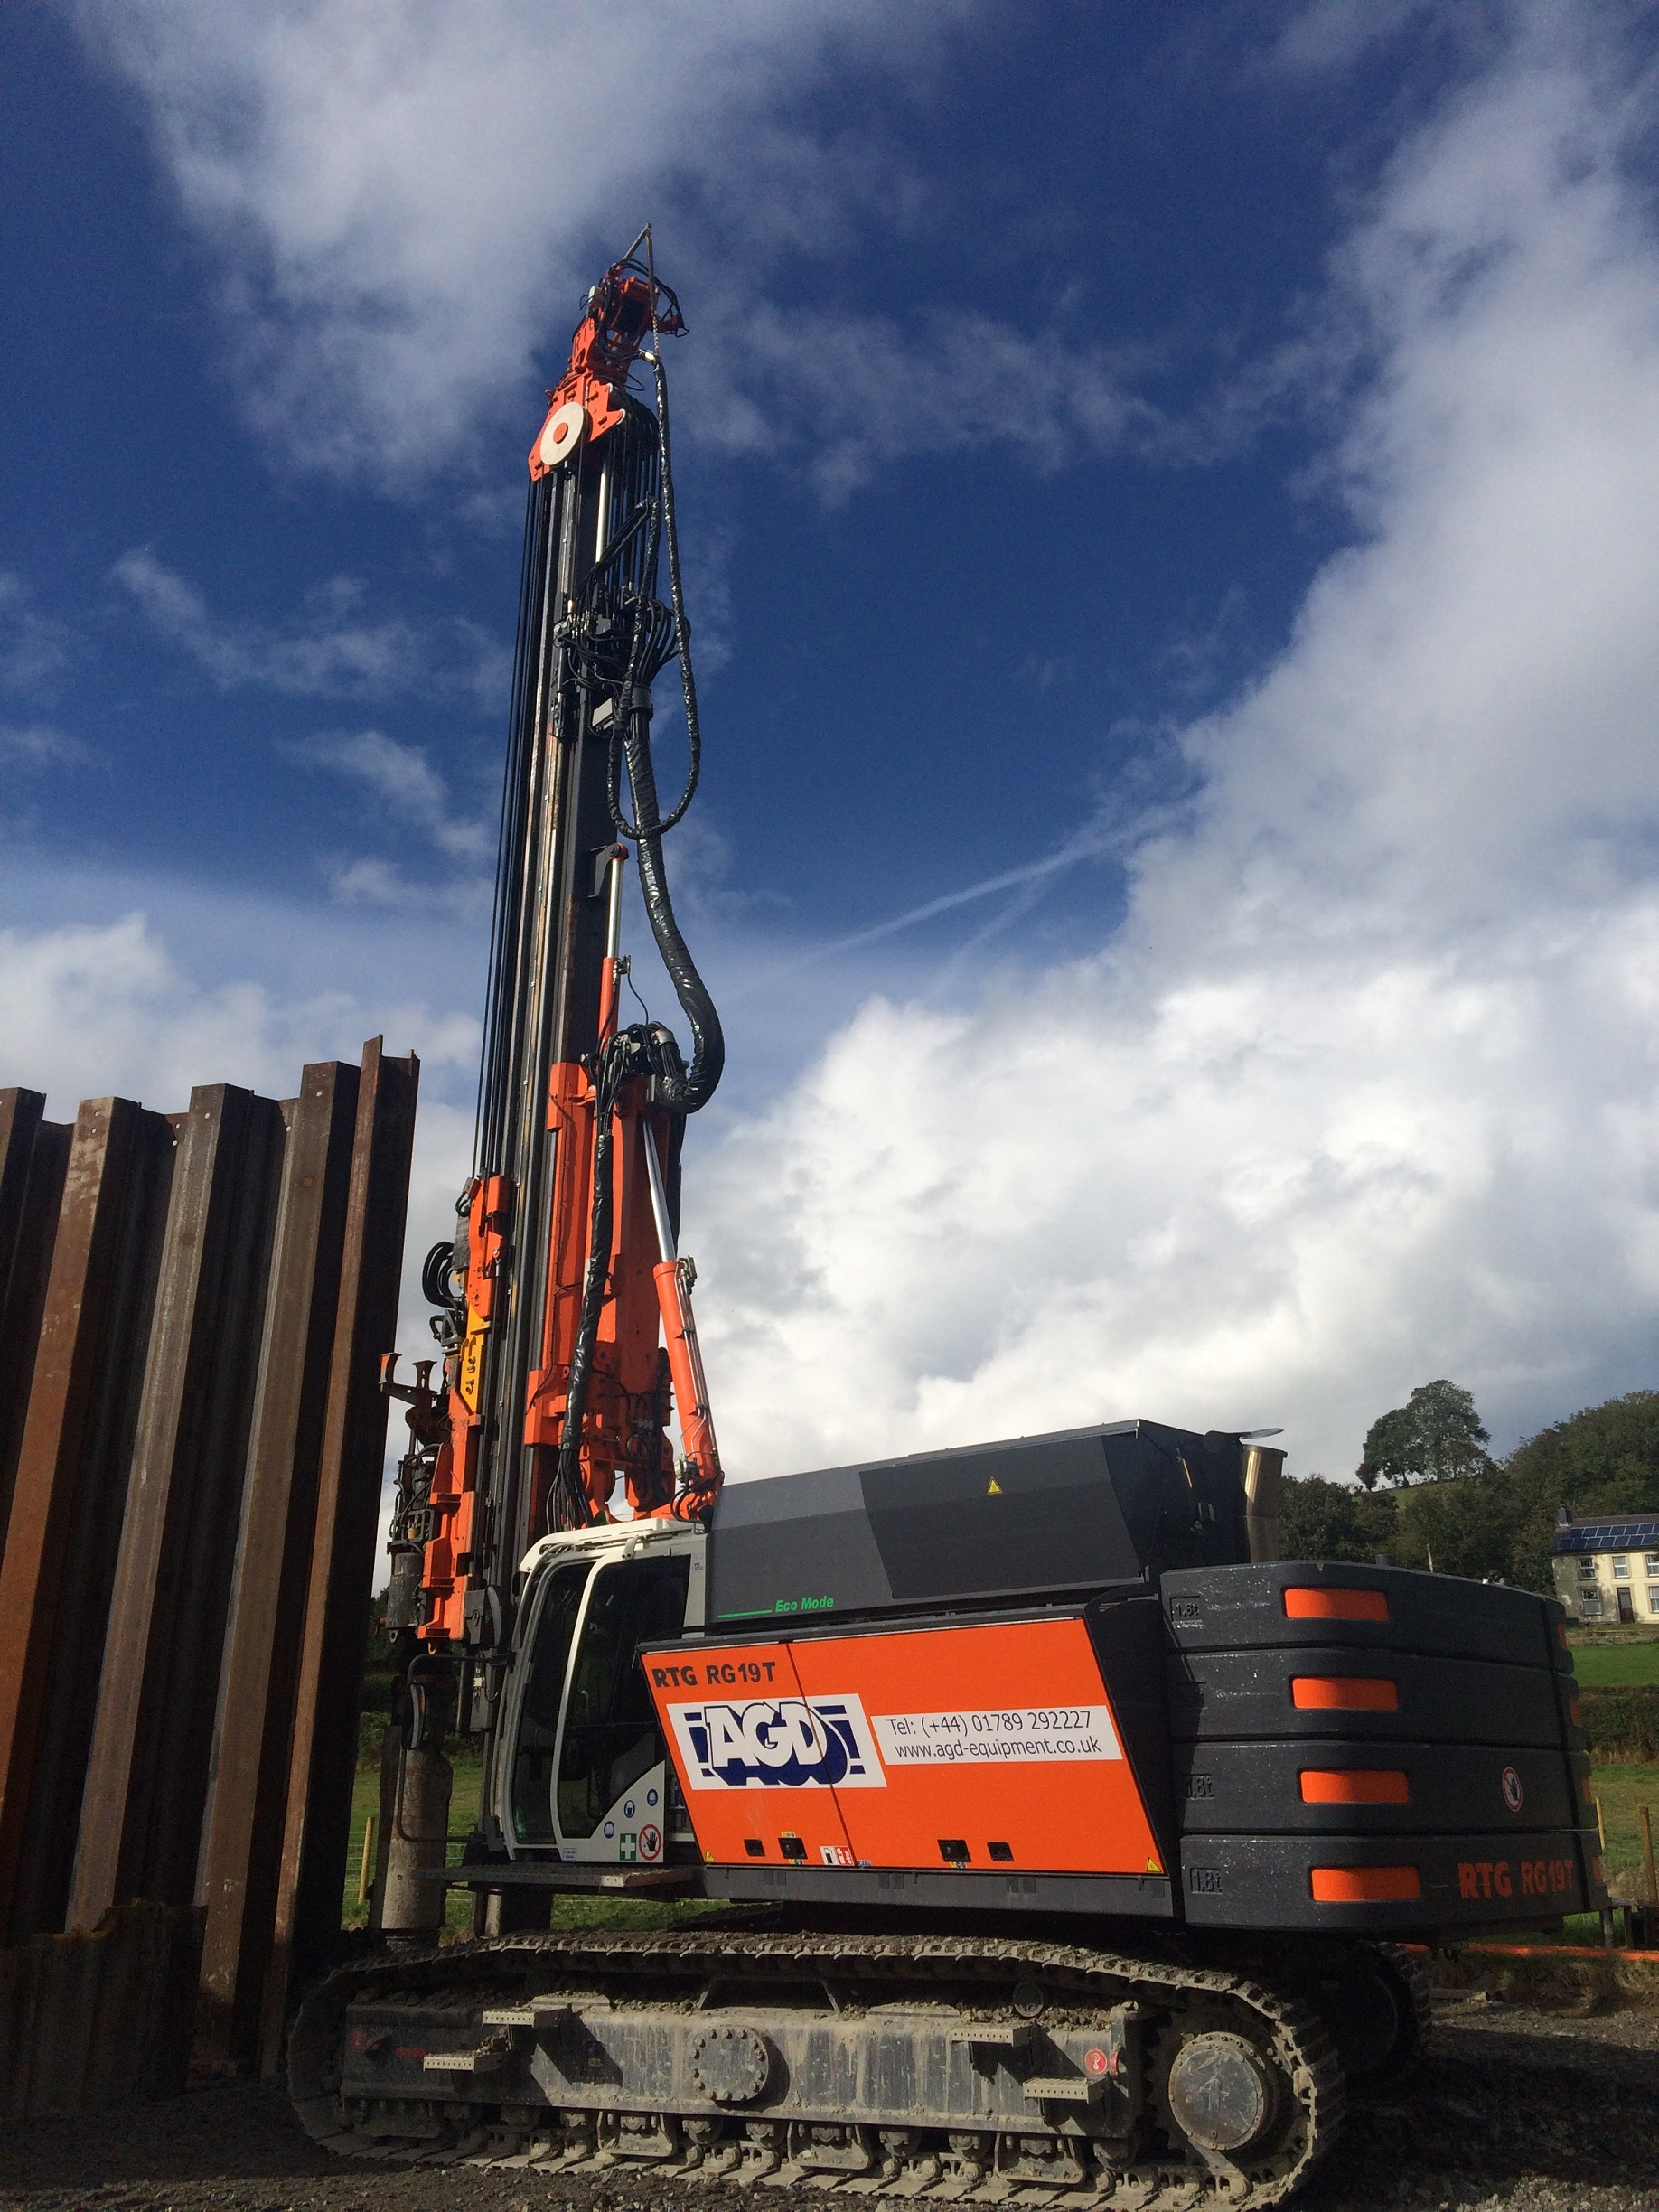 RTG RG19T telescopic leader rig on hire in Wales